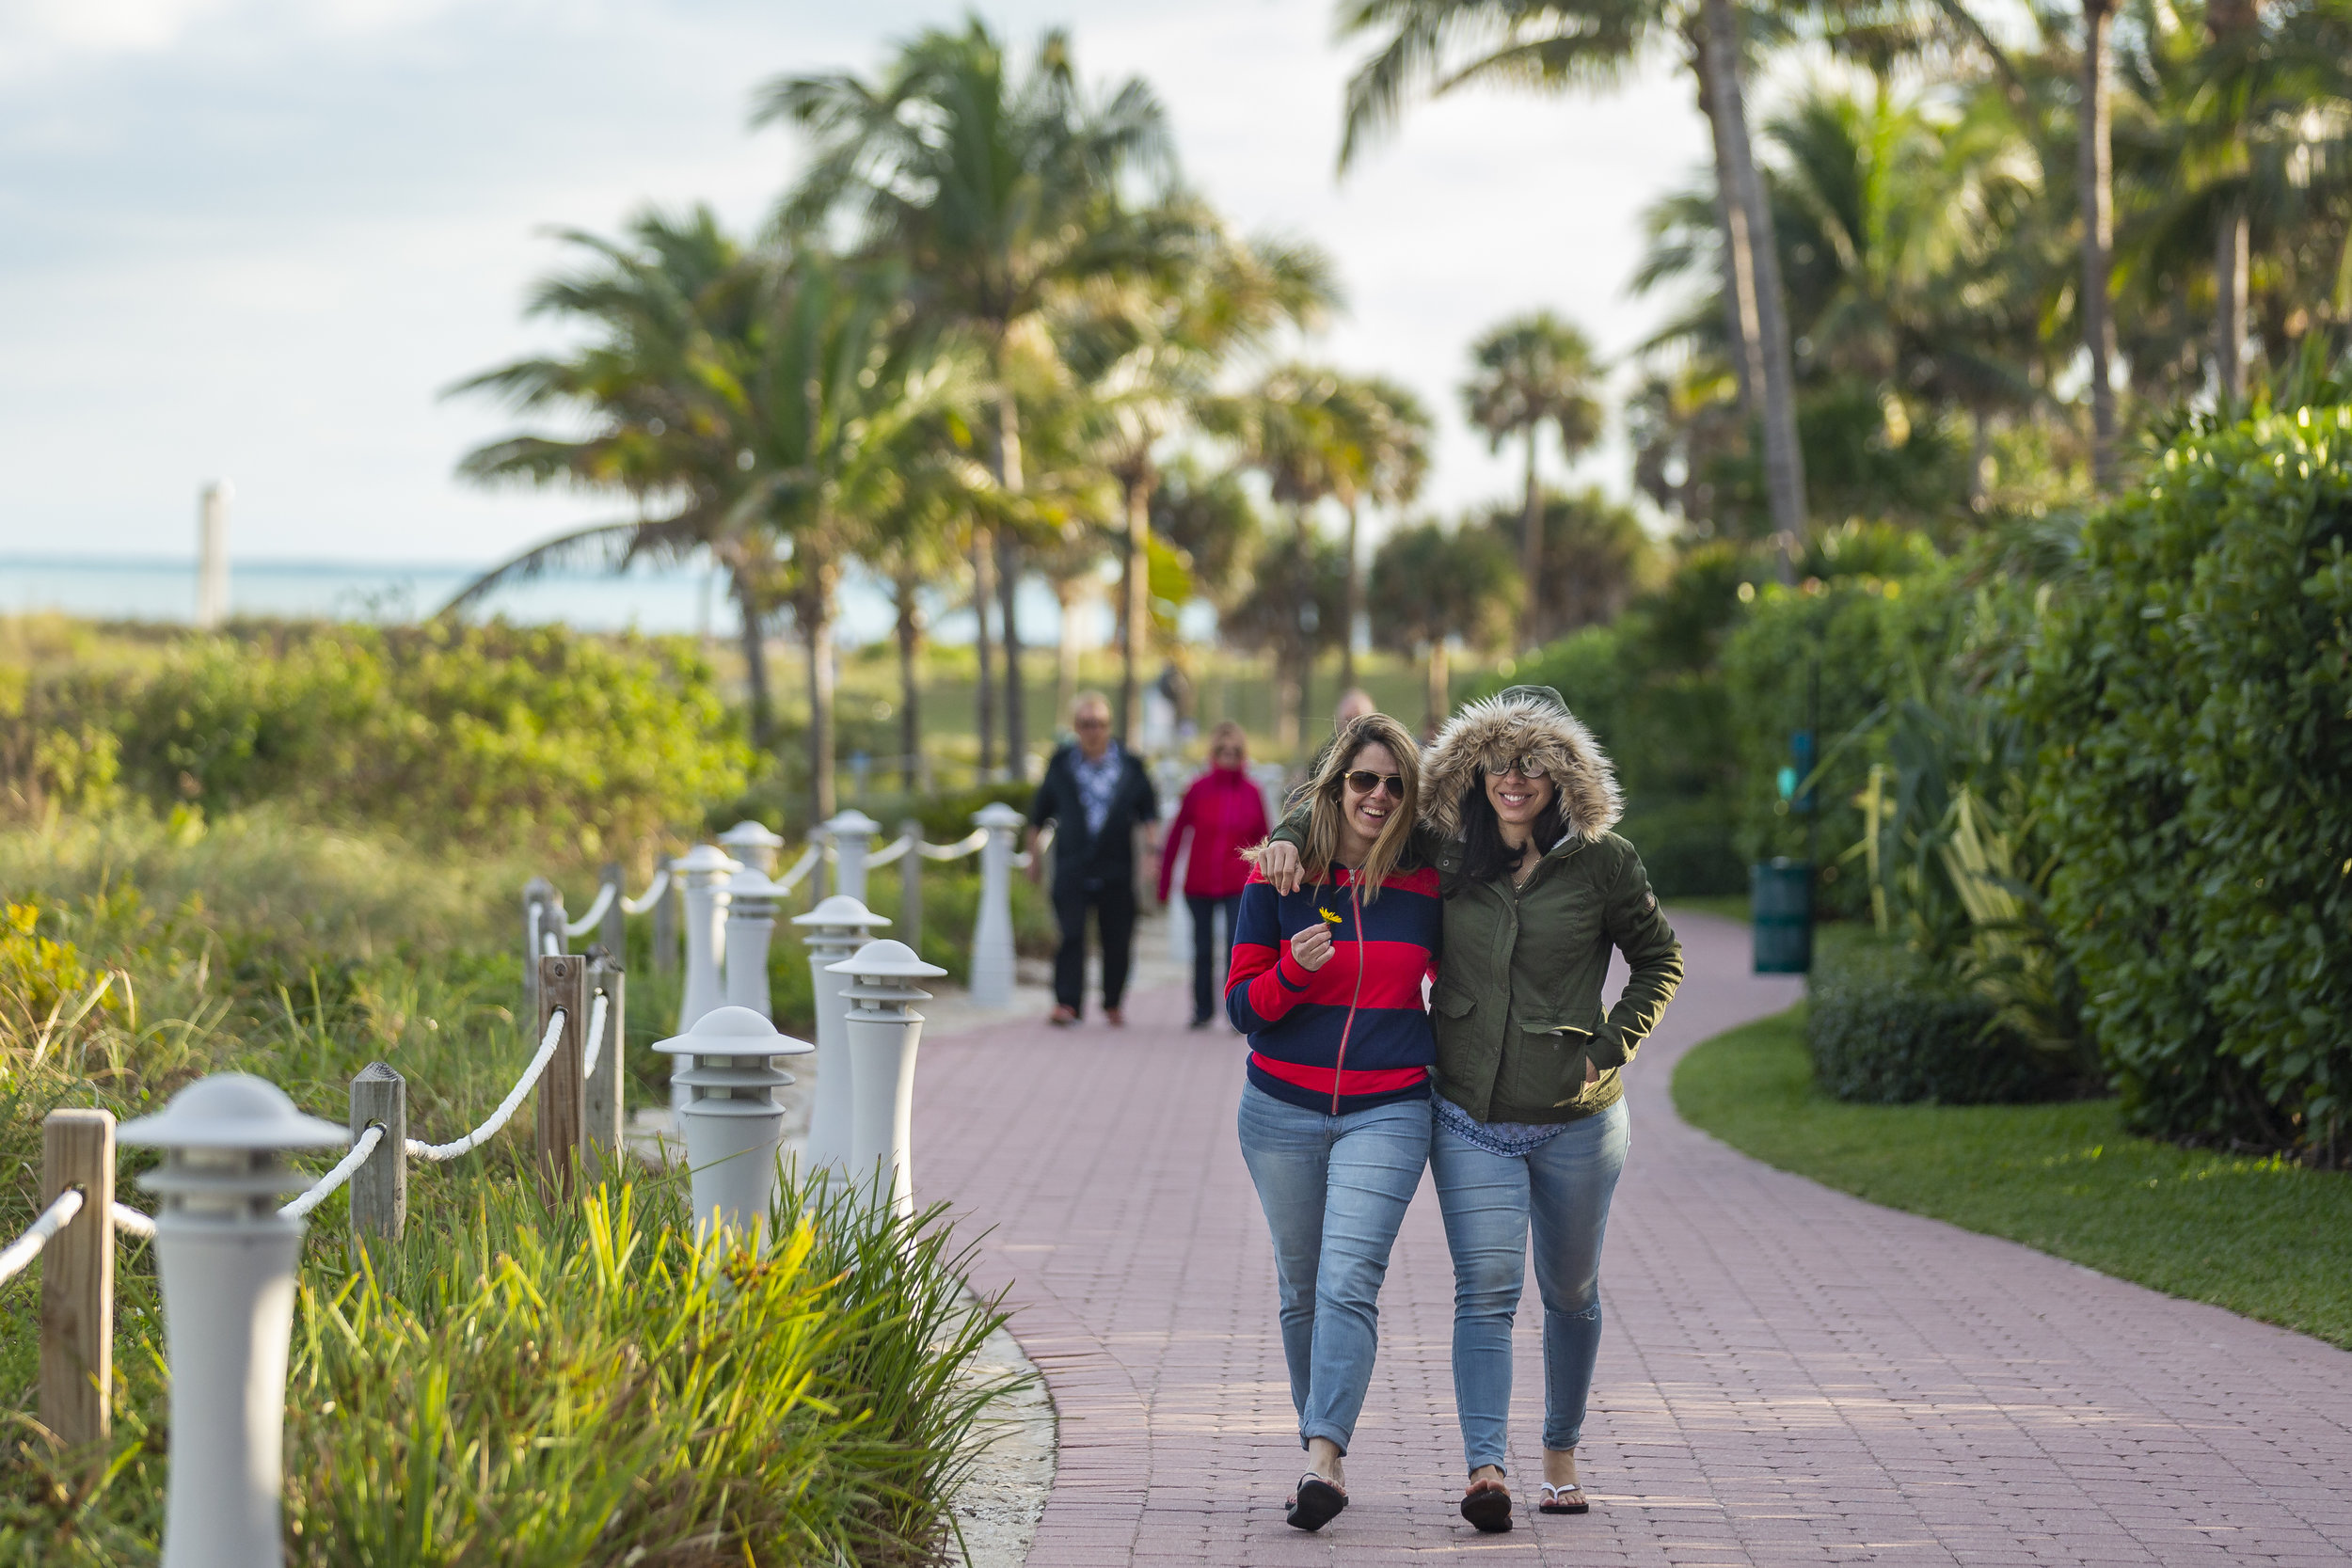 Regina Soares, left, and Rafaela Squiabel, both tourists from Boston, walk down a sidewalk near South Pointe Park Pier in Miami Beach as temperatures drop into the 50s on Monday, Jan. 28, 2019.